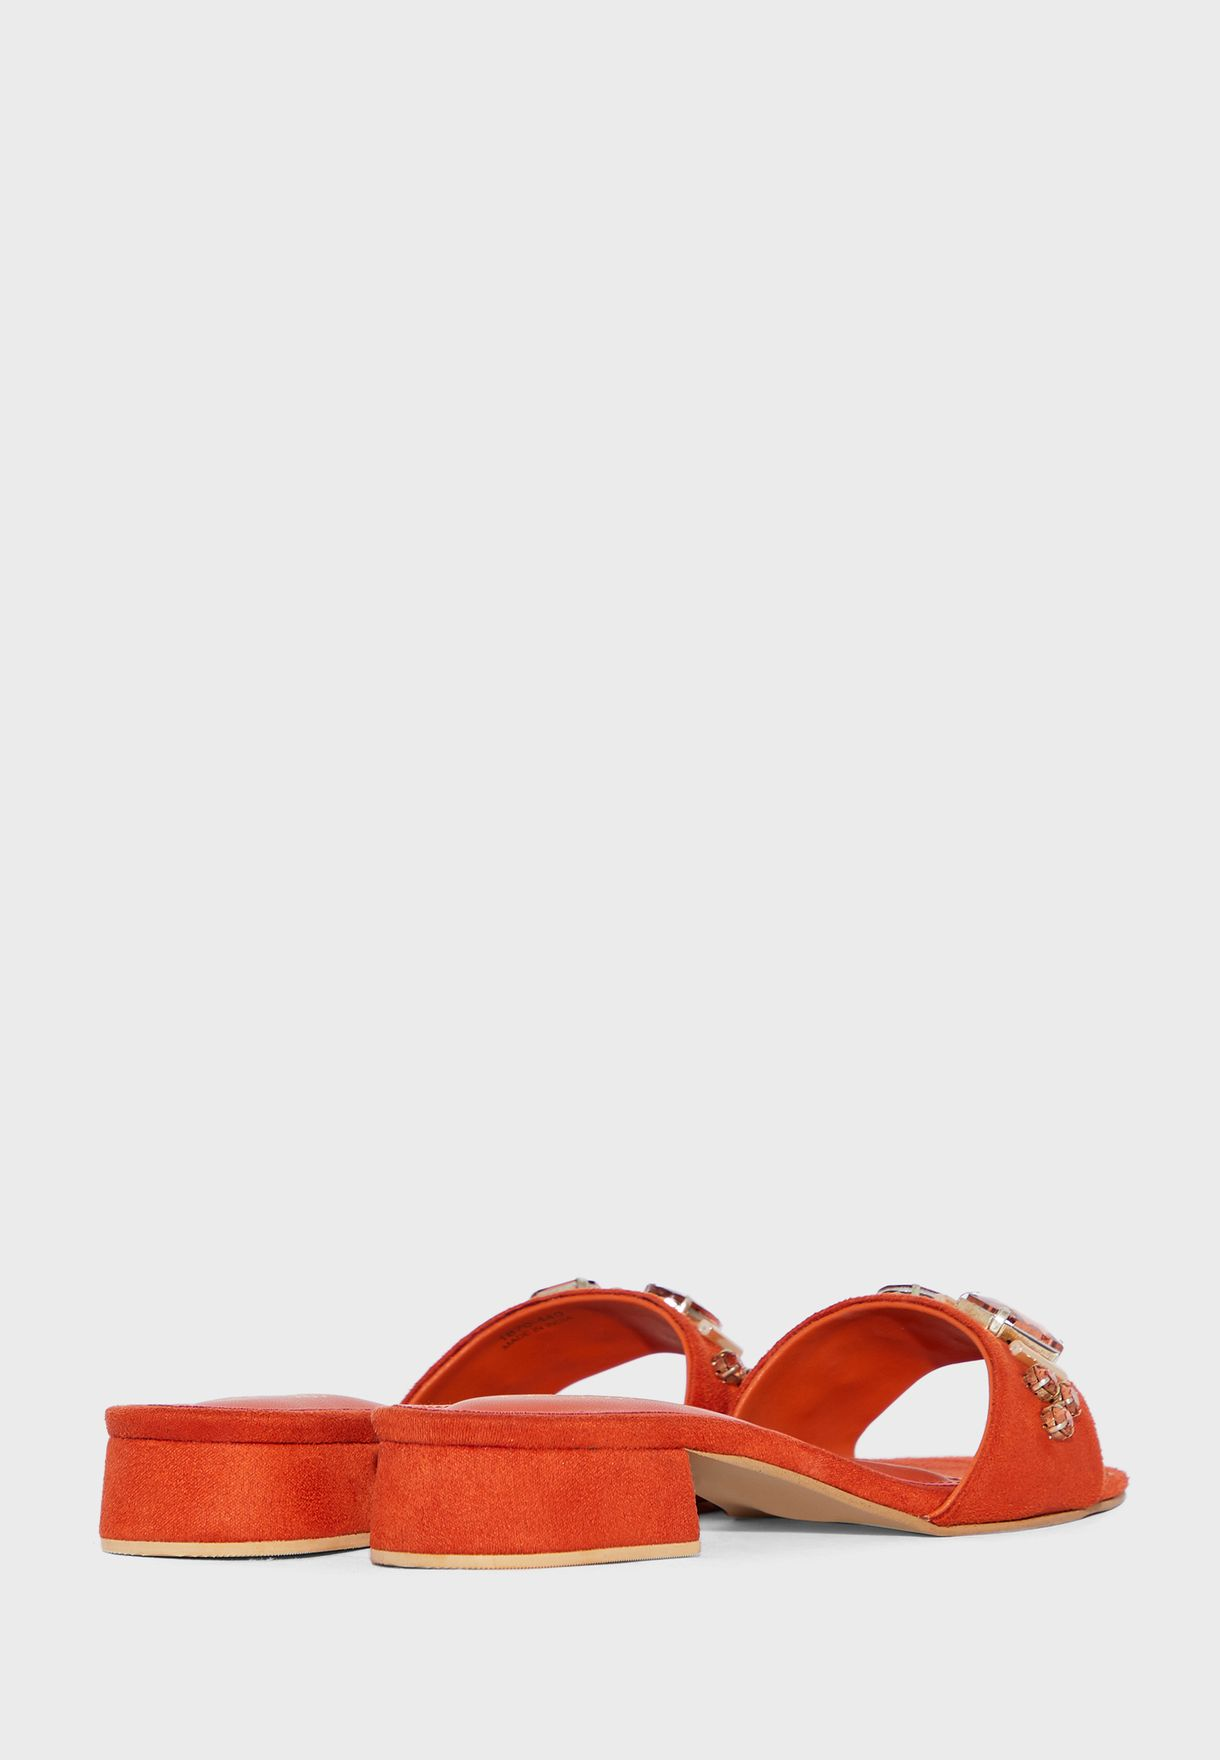 Buy Austin Reed Orange Single Strap Mid Heel Sandal For Women In Mena Worldwide Aullhs14dff